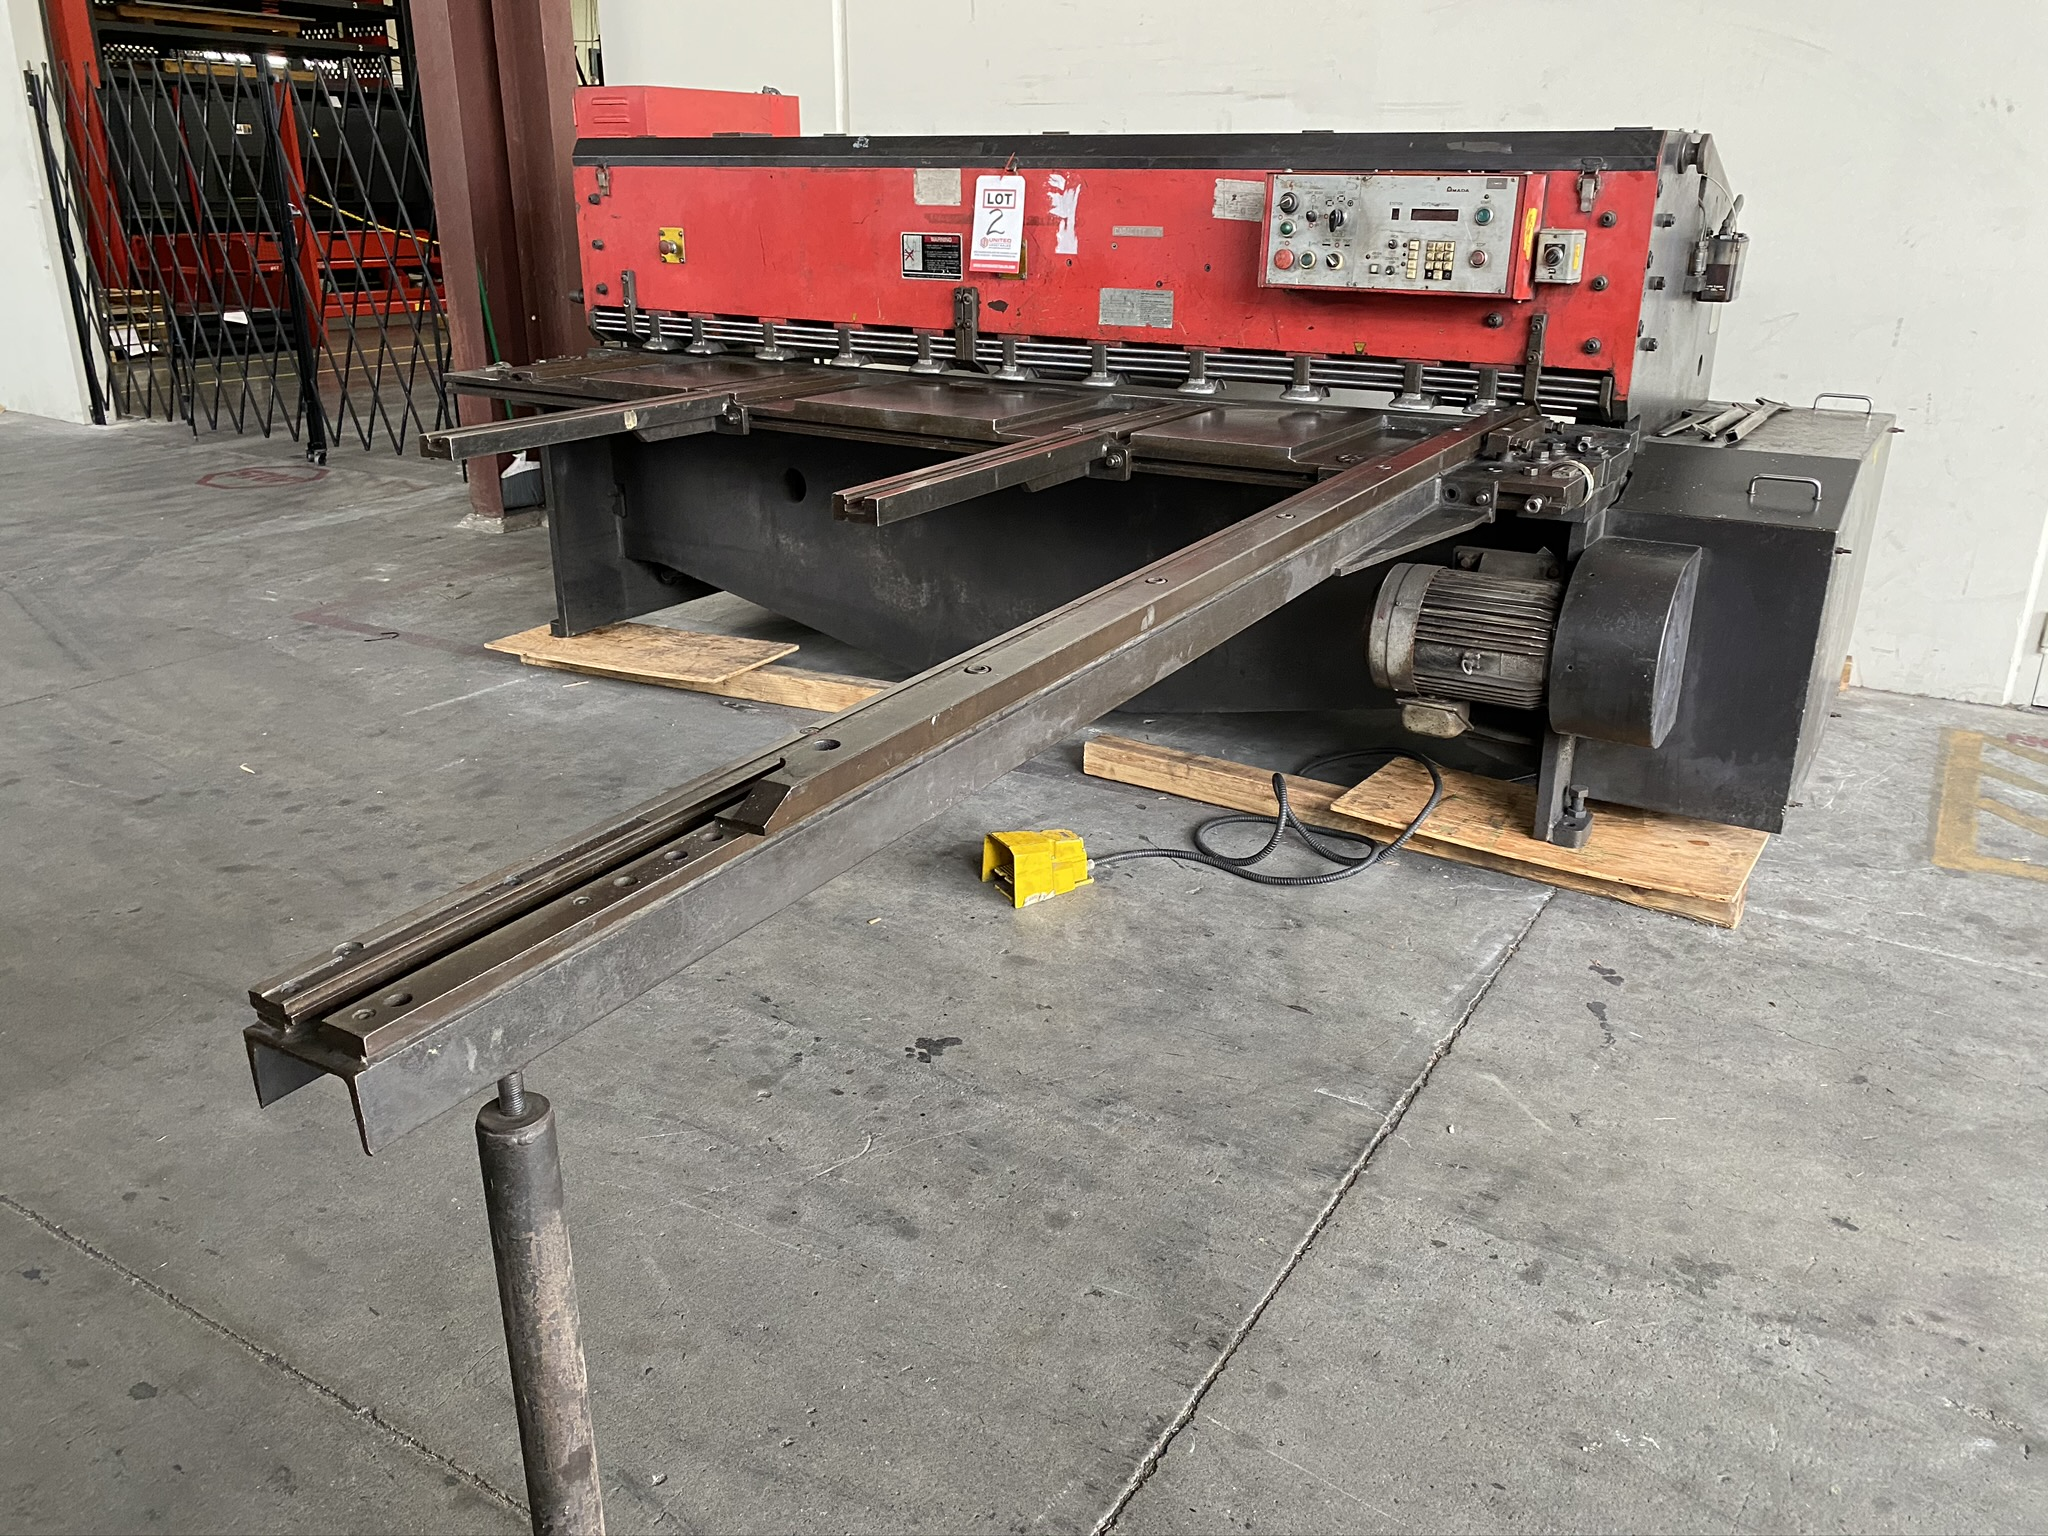 1990 AMADA M-2560 SHEAR, 2500 MM, LENGTH, 6 MM THICKNESS, MECHANICAL, SHEET SUPPORTS - Image 3 of 14